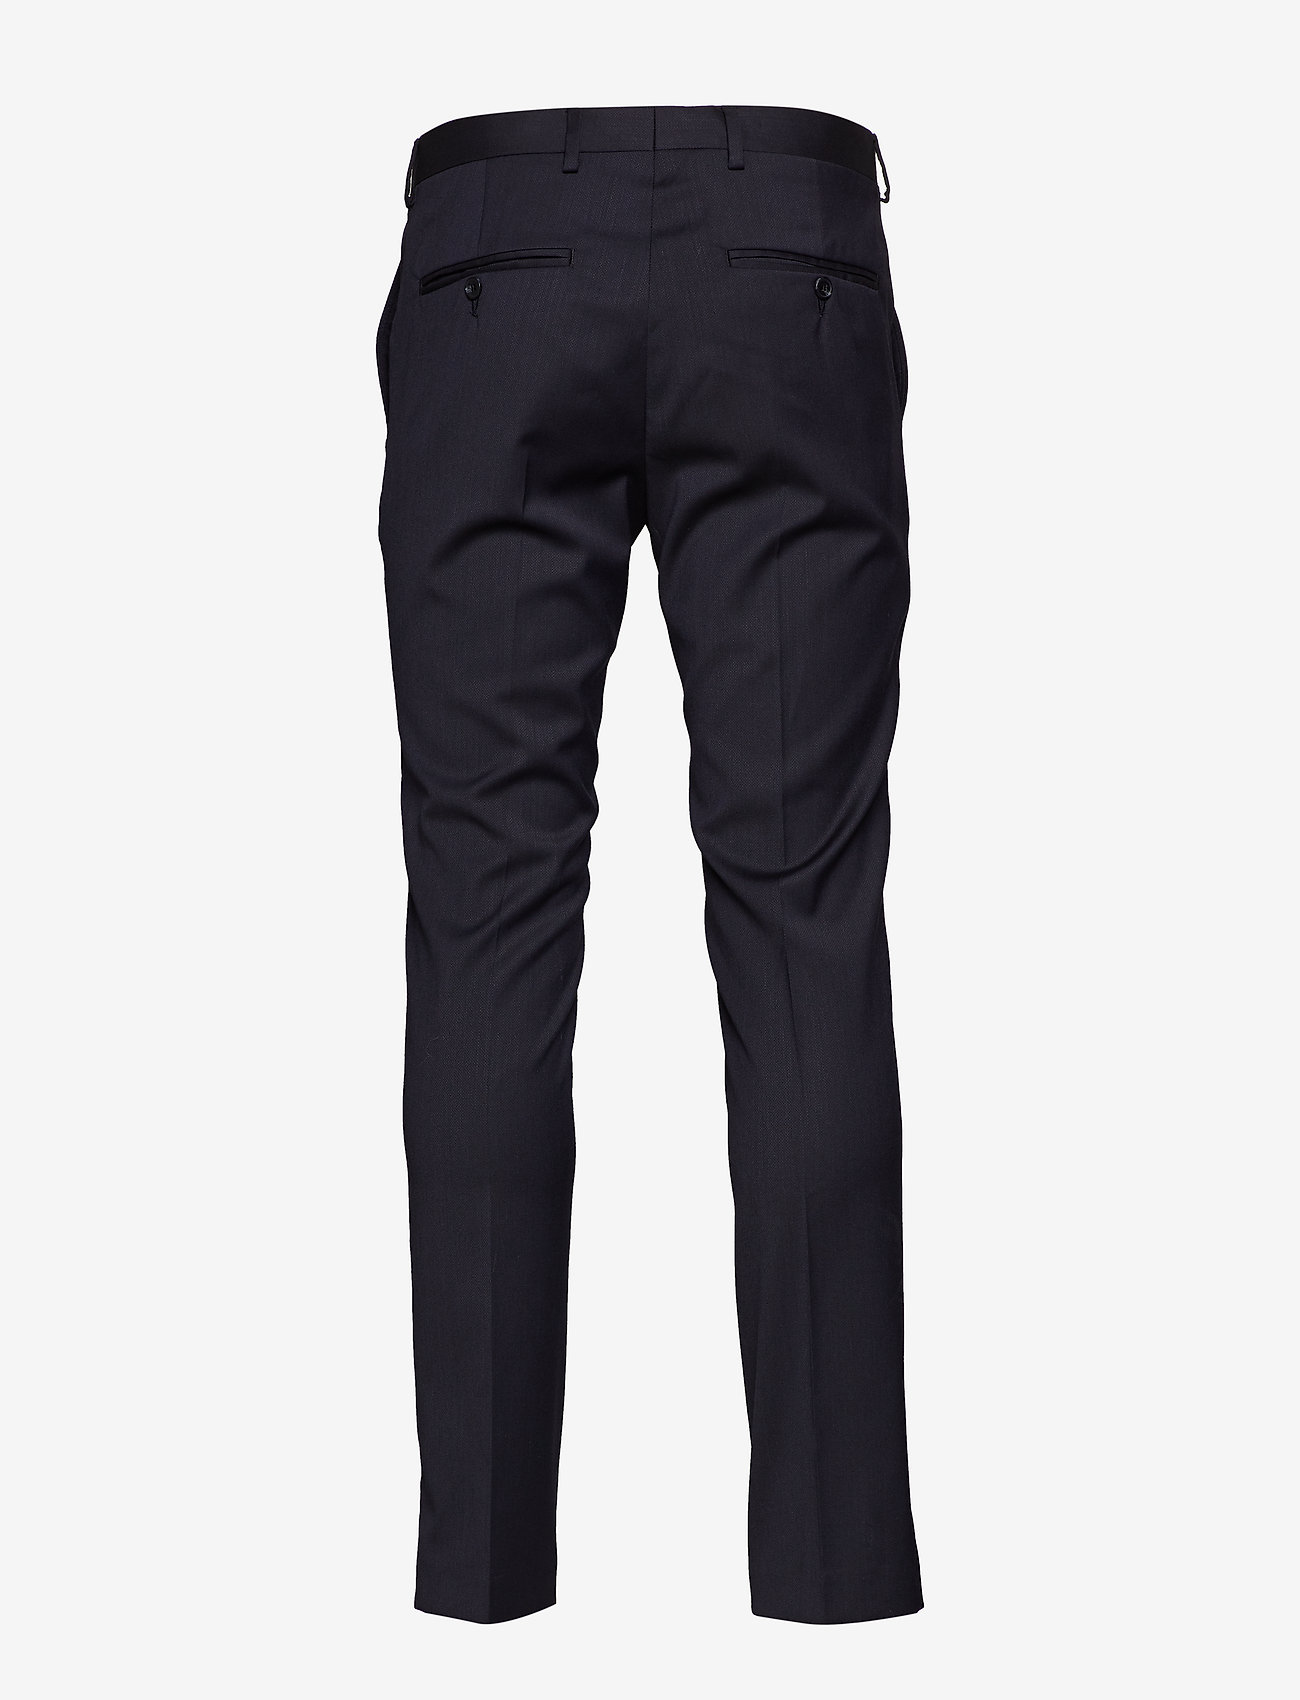 Selected Homme - SLHSLIM-MYLOBILL NAVY TROUSER B NOOS - suit trousers - navy blazer